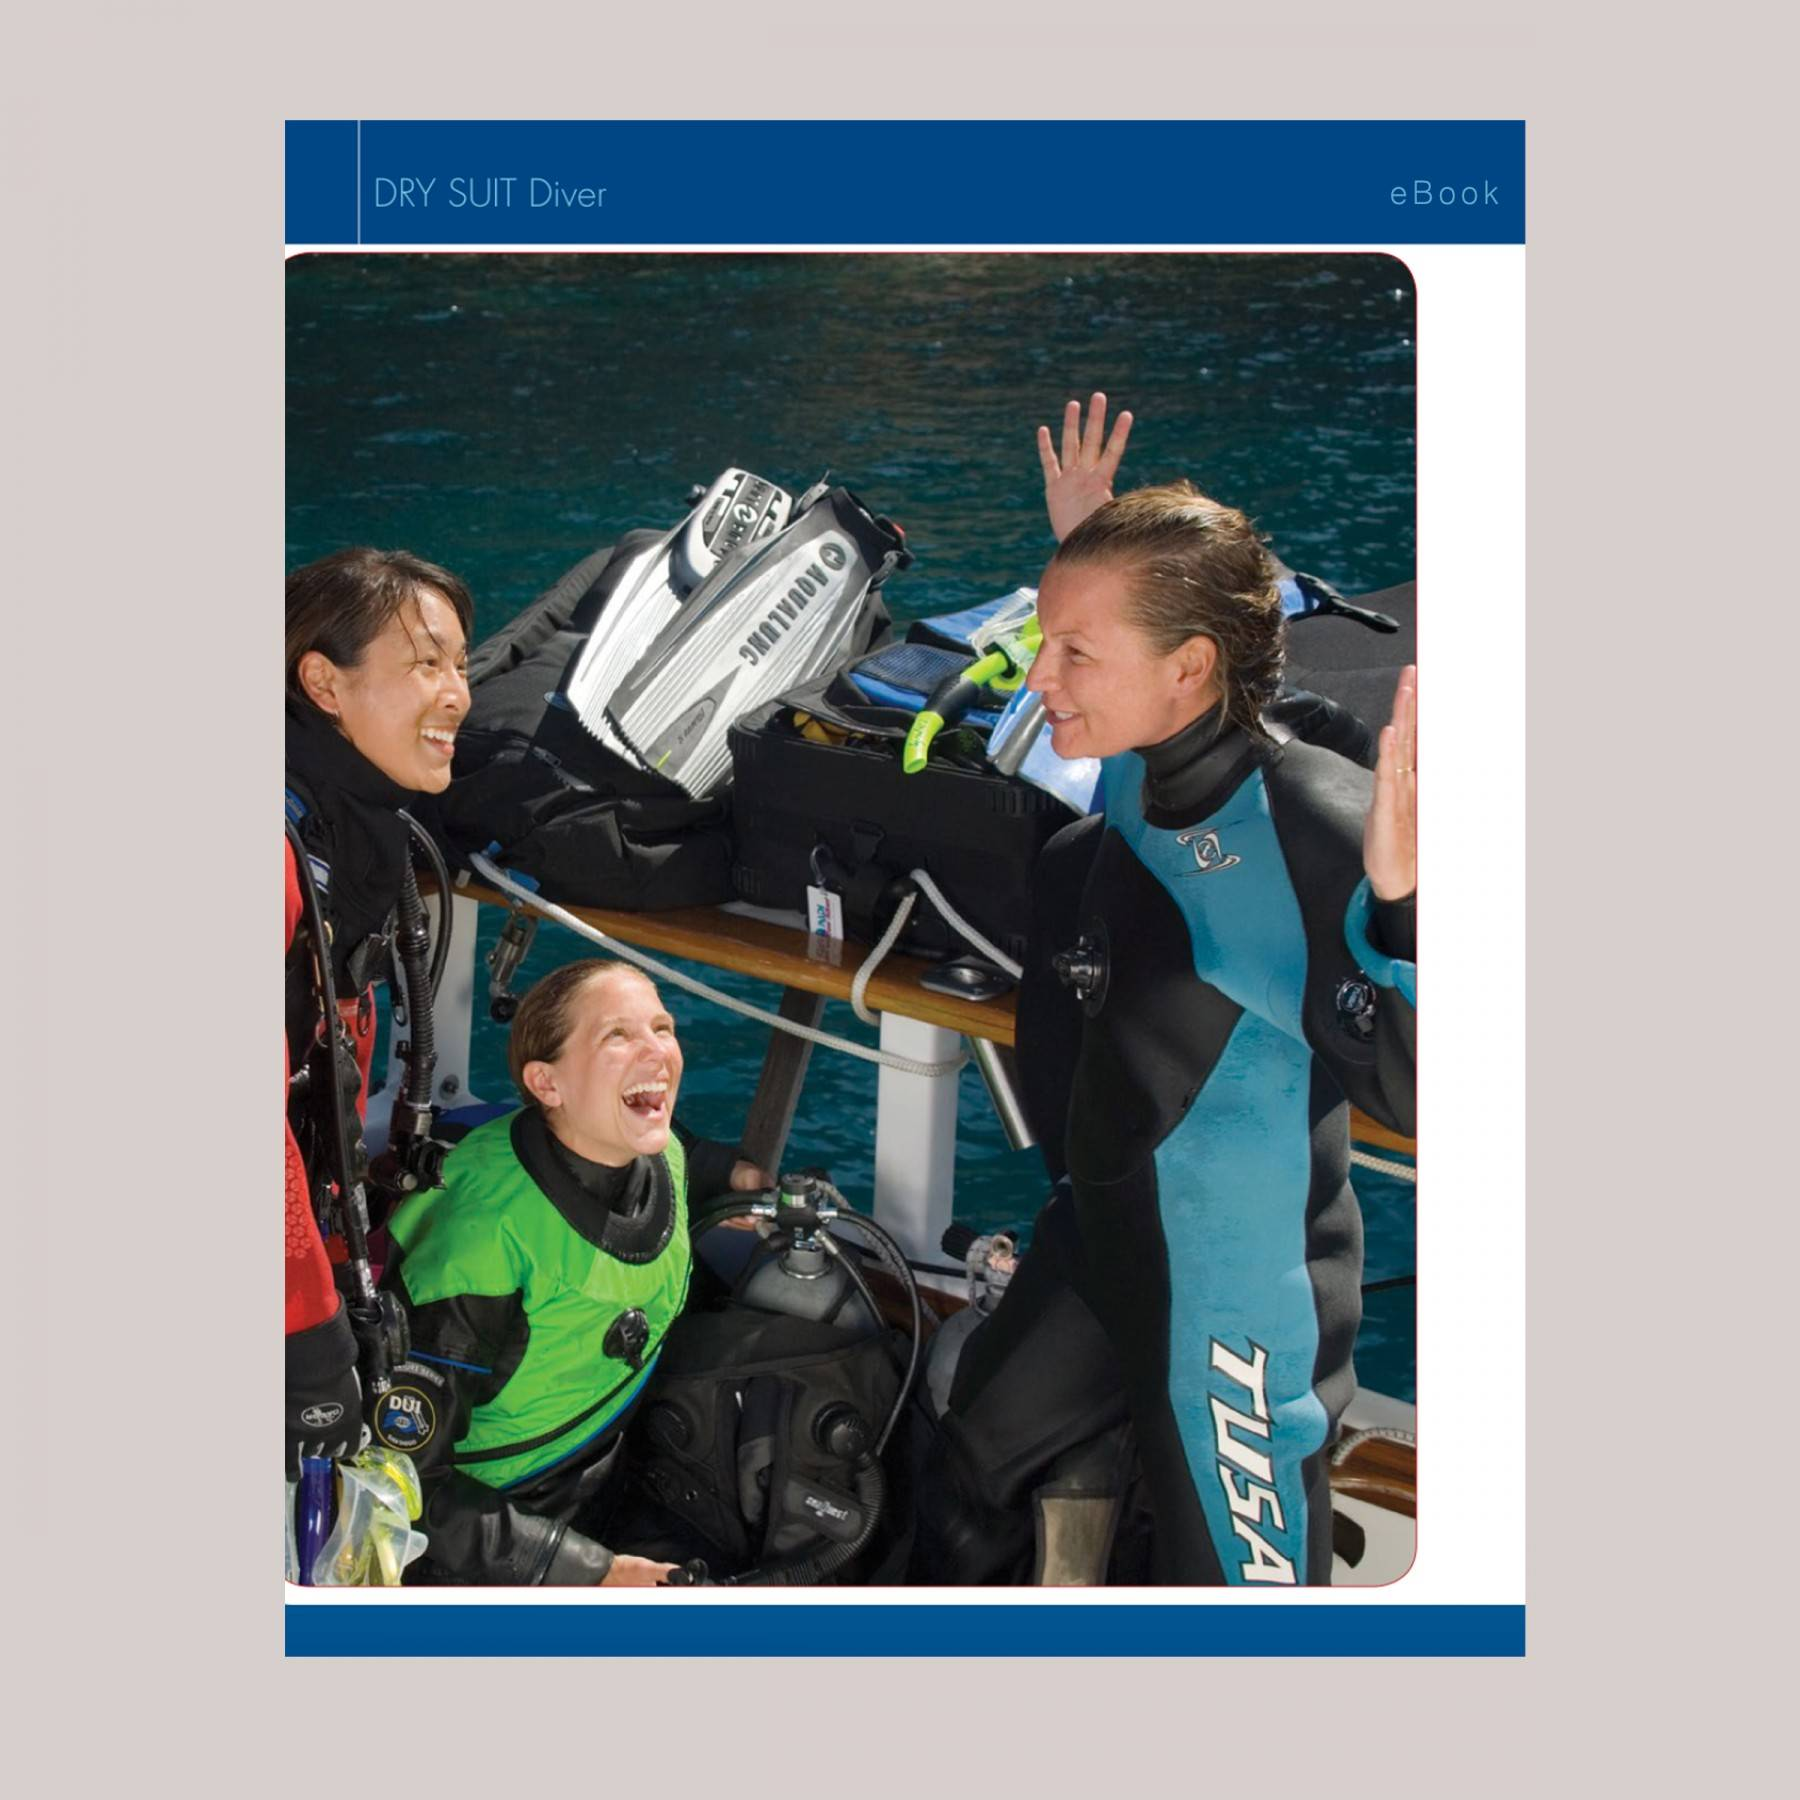 padi-dry-suit-manual-ebook